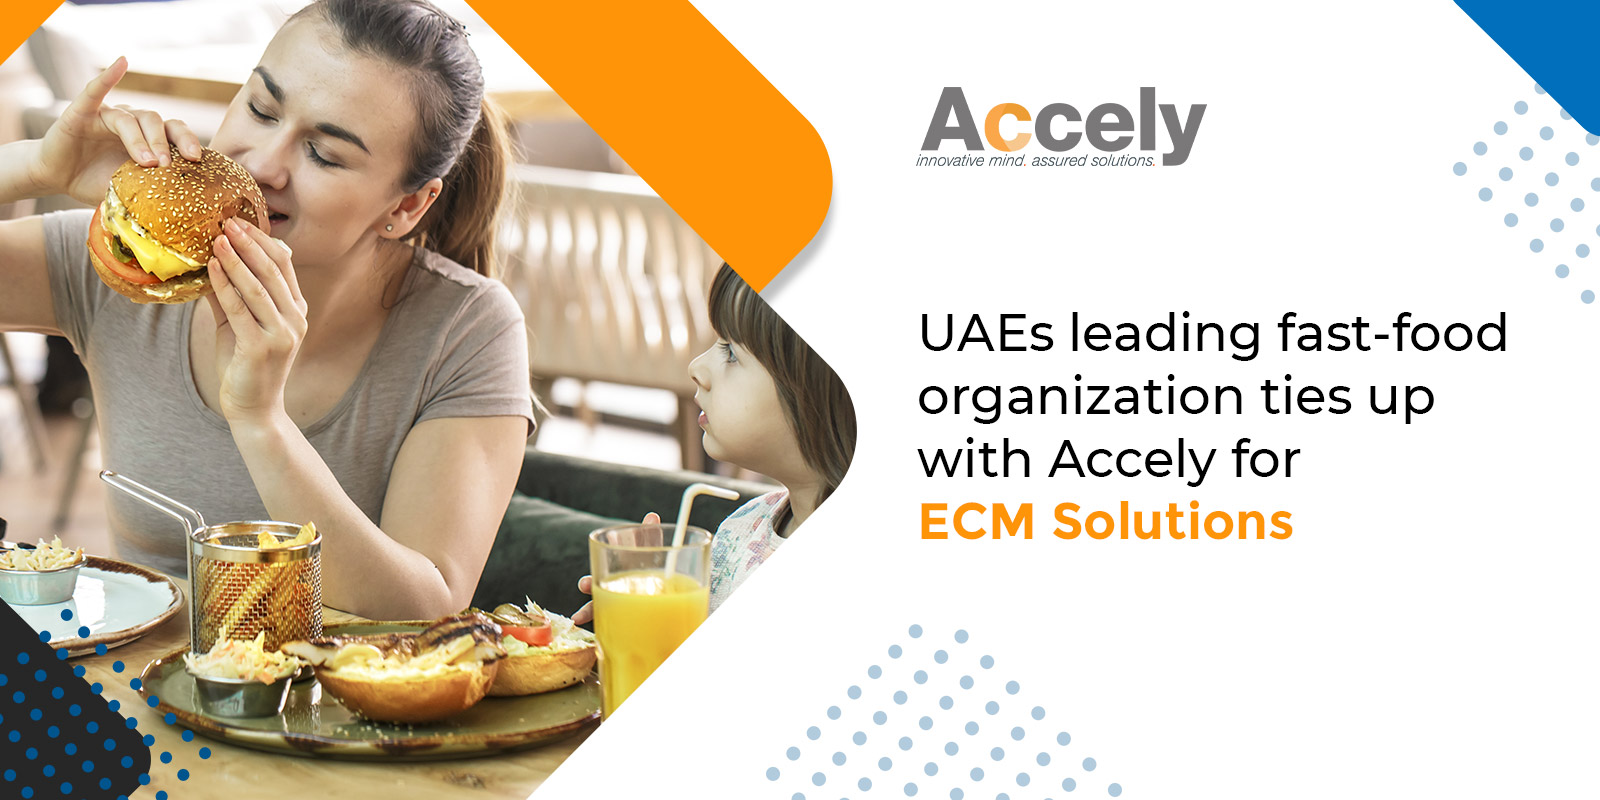 UAEs leading fast-food organization ties up with Accely for ECM Solutions